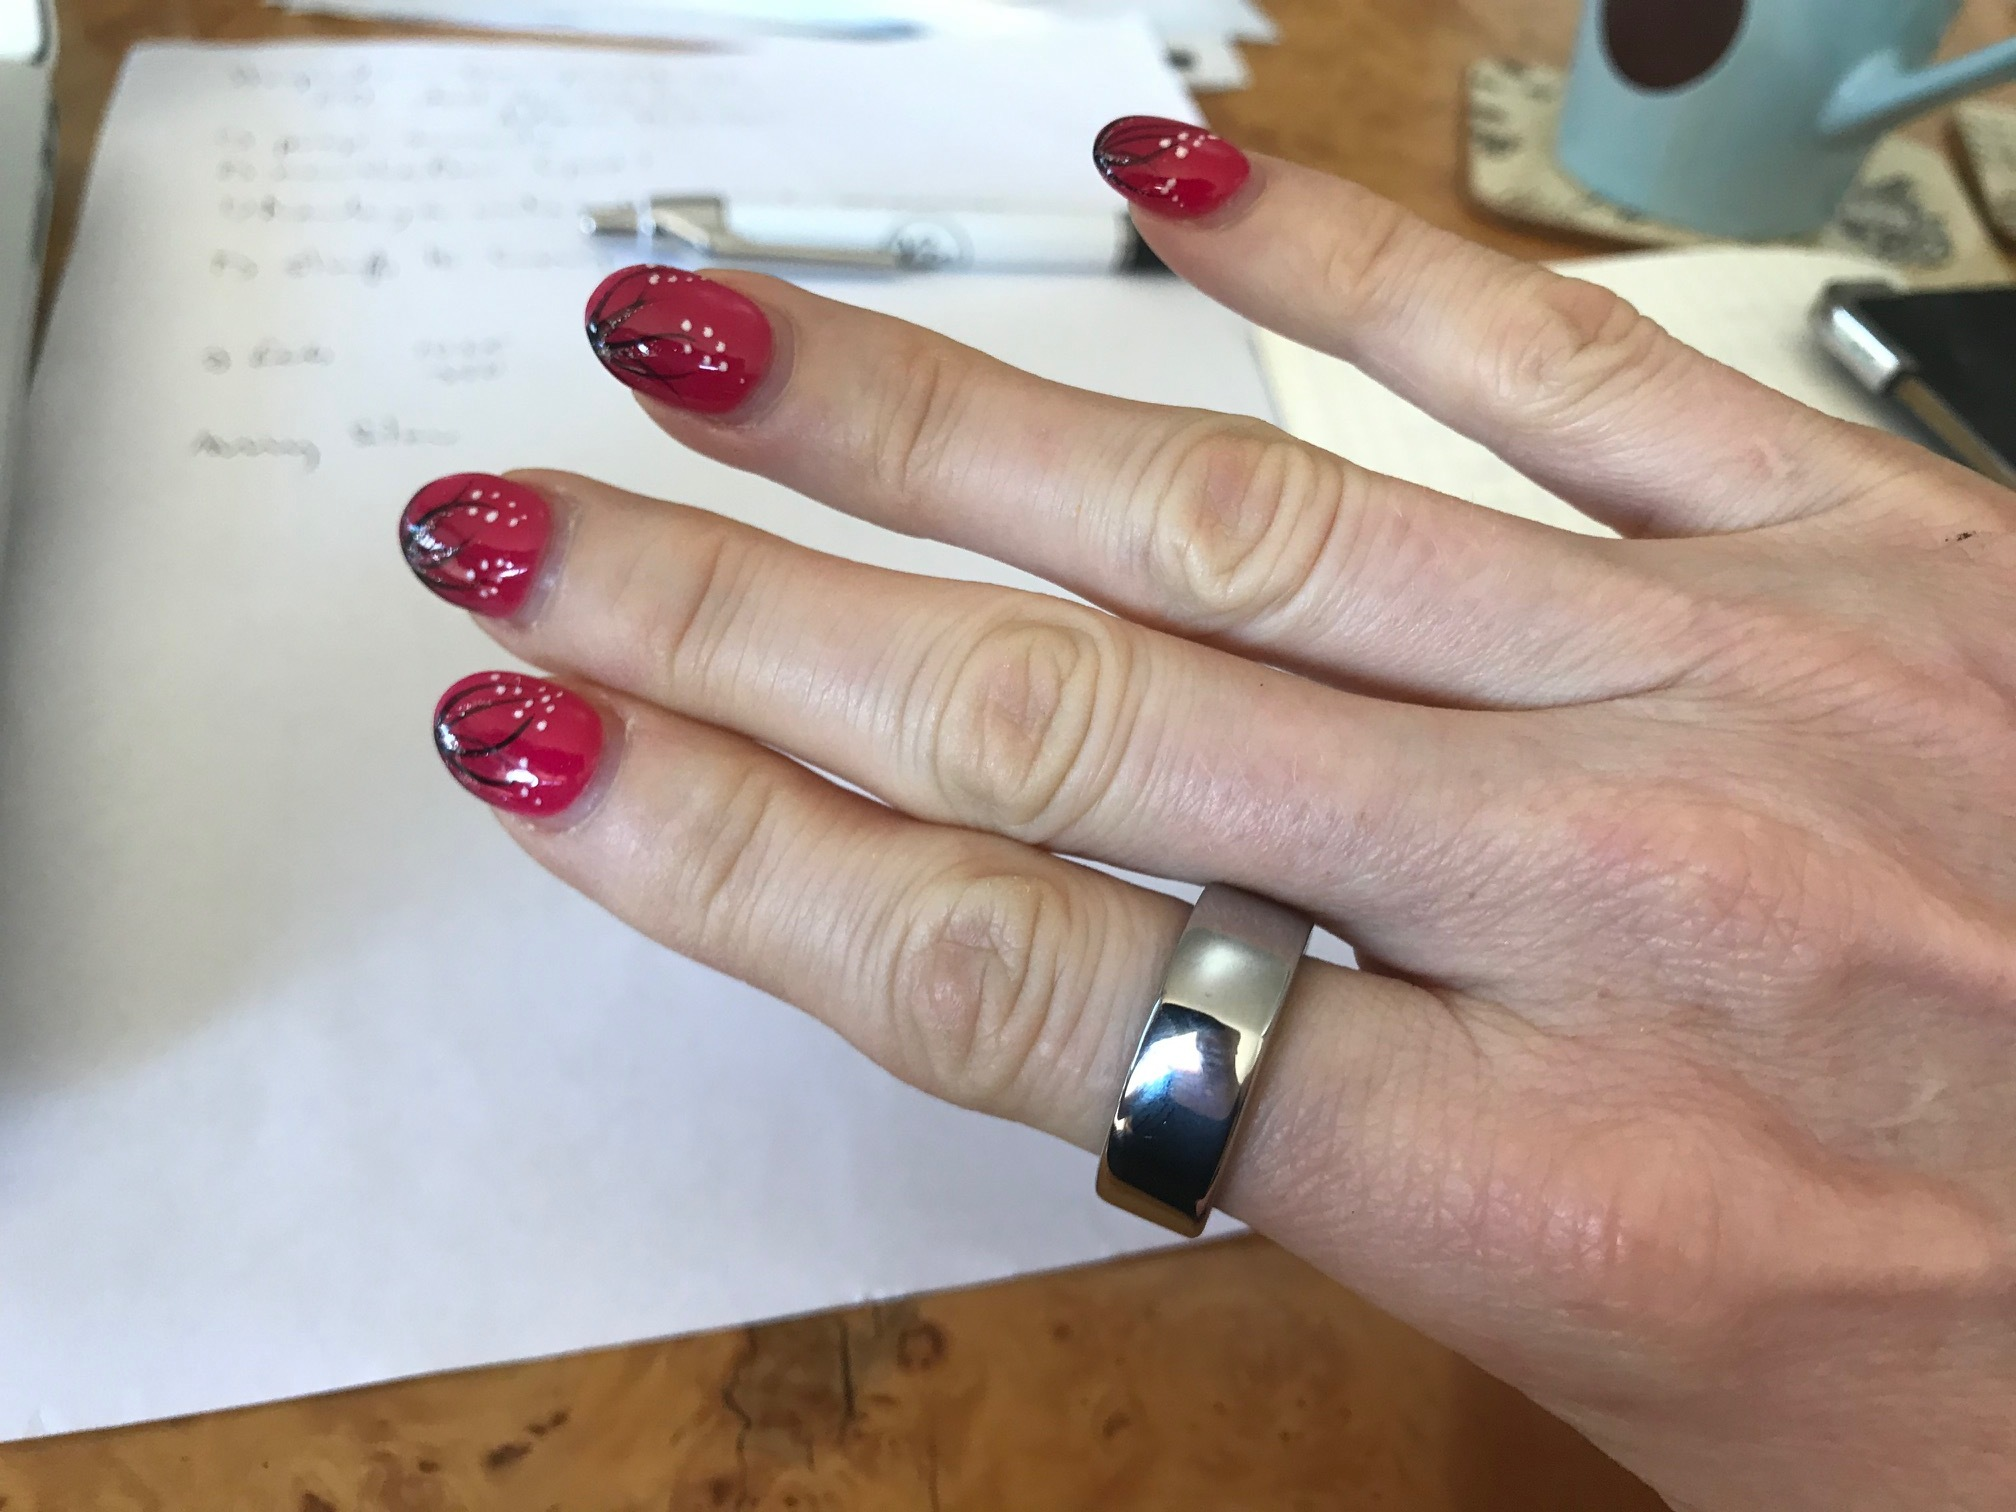 The Oura Ring in action